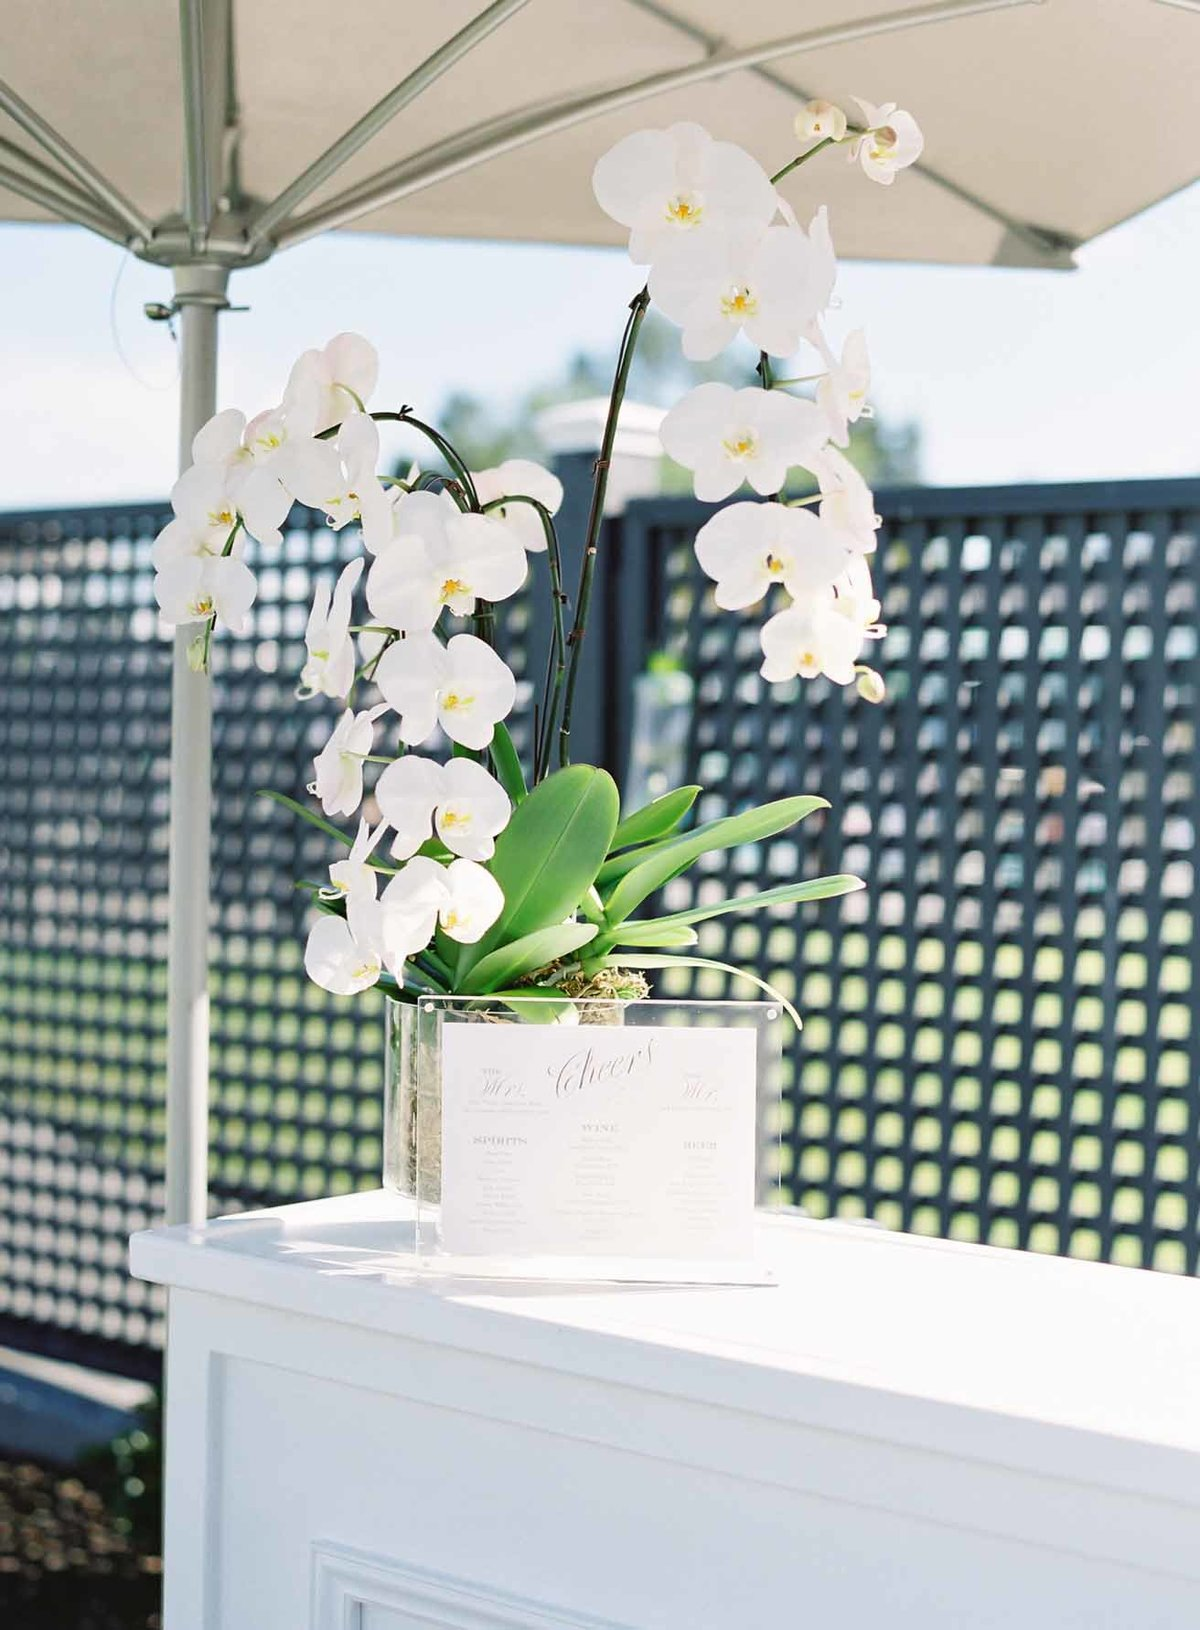 Beautiful potted white phalaenopsis orchid for bar at wedding reception